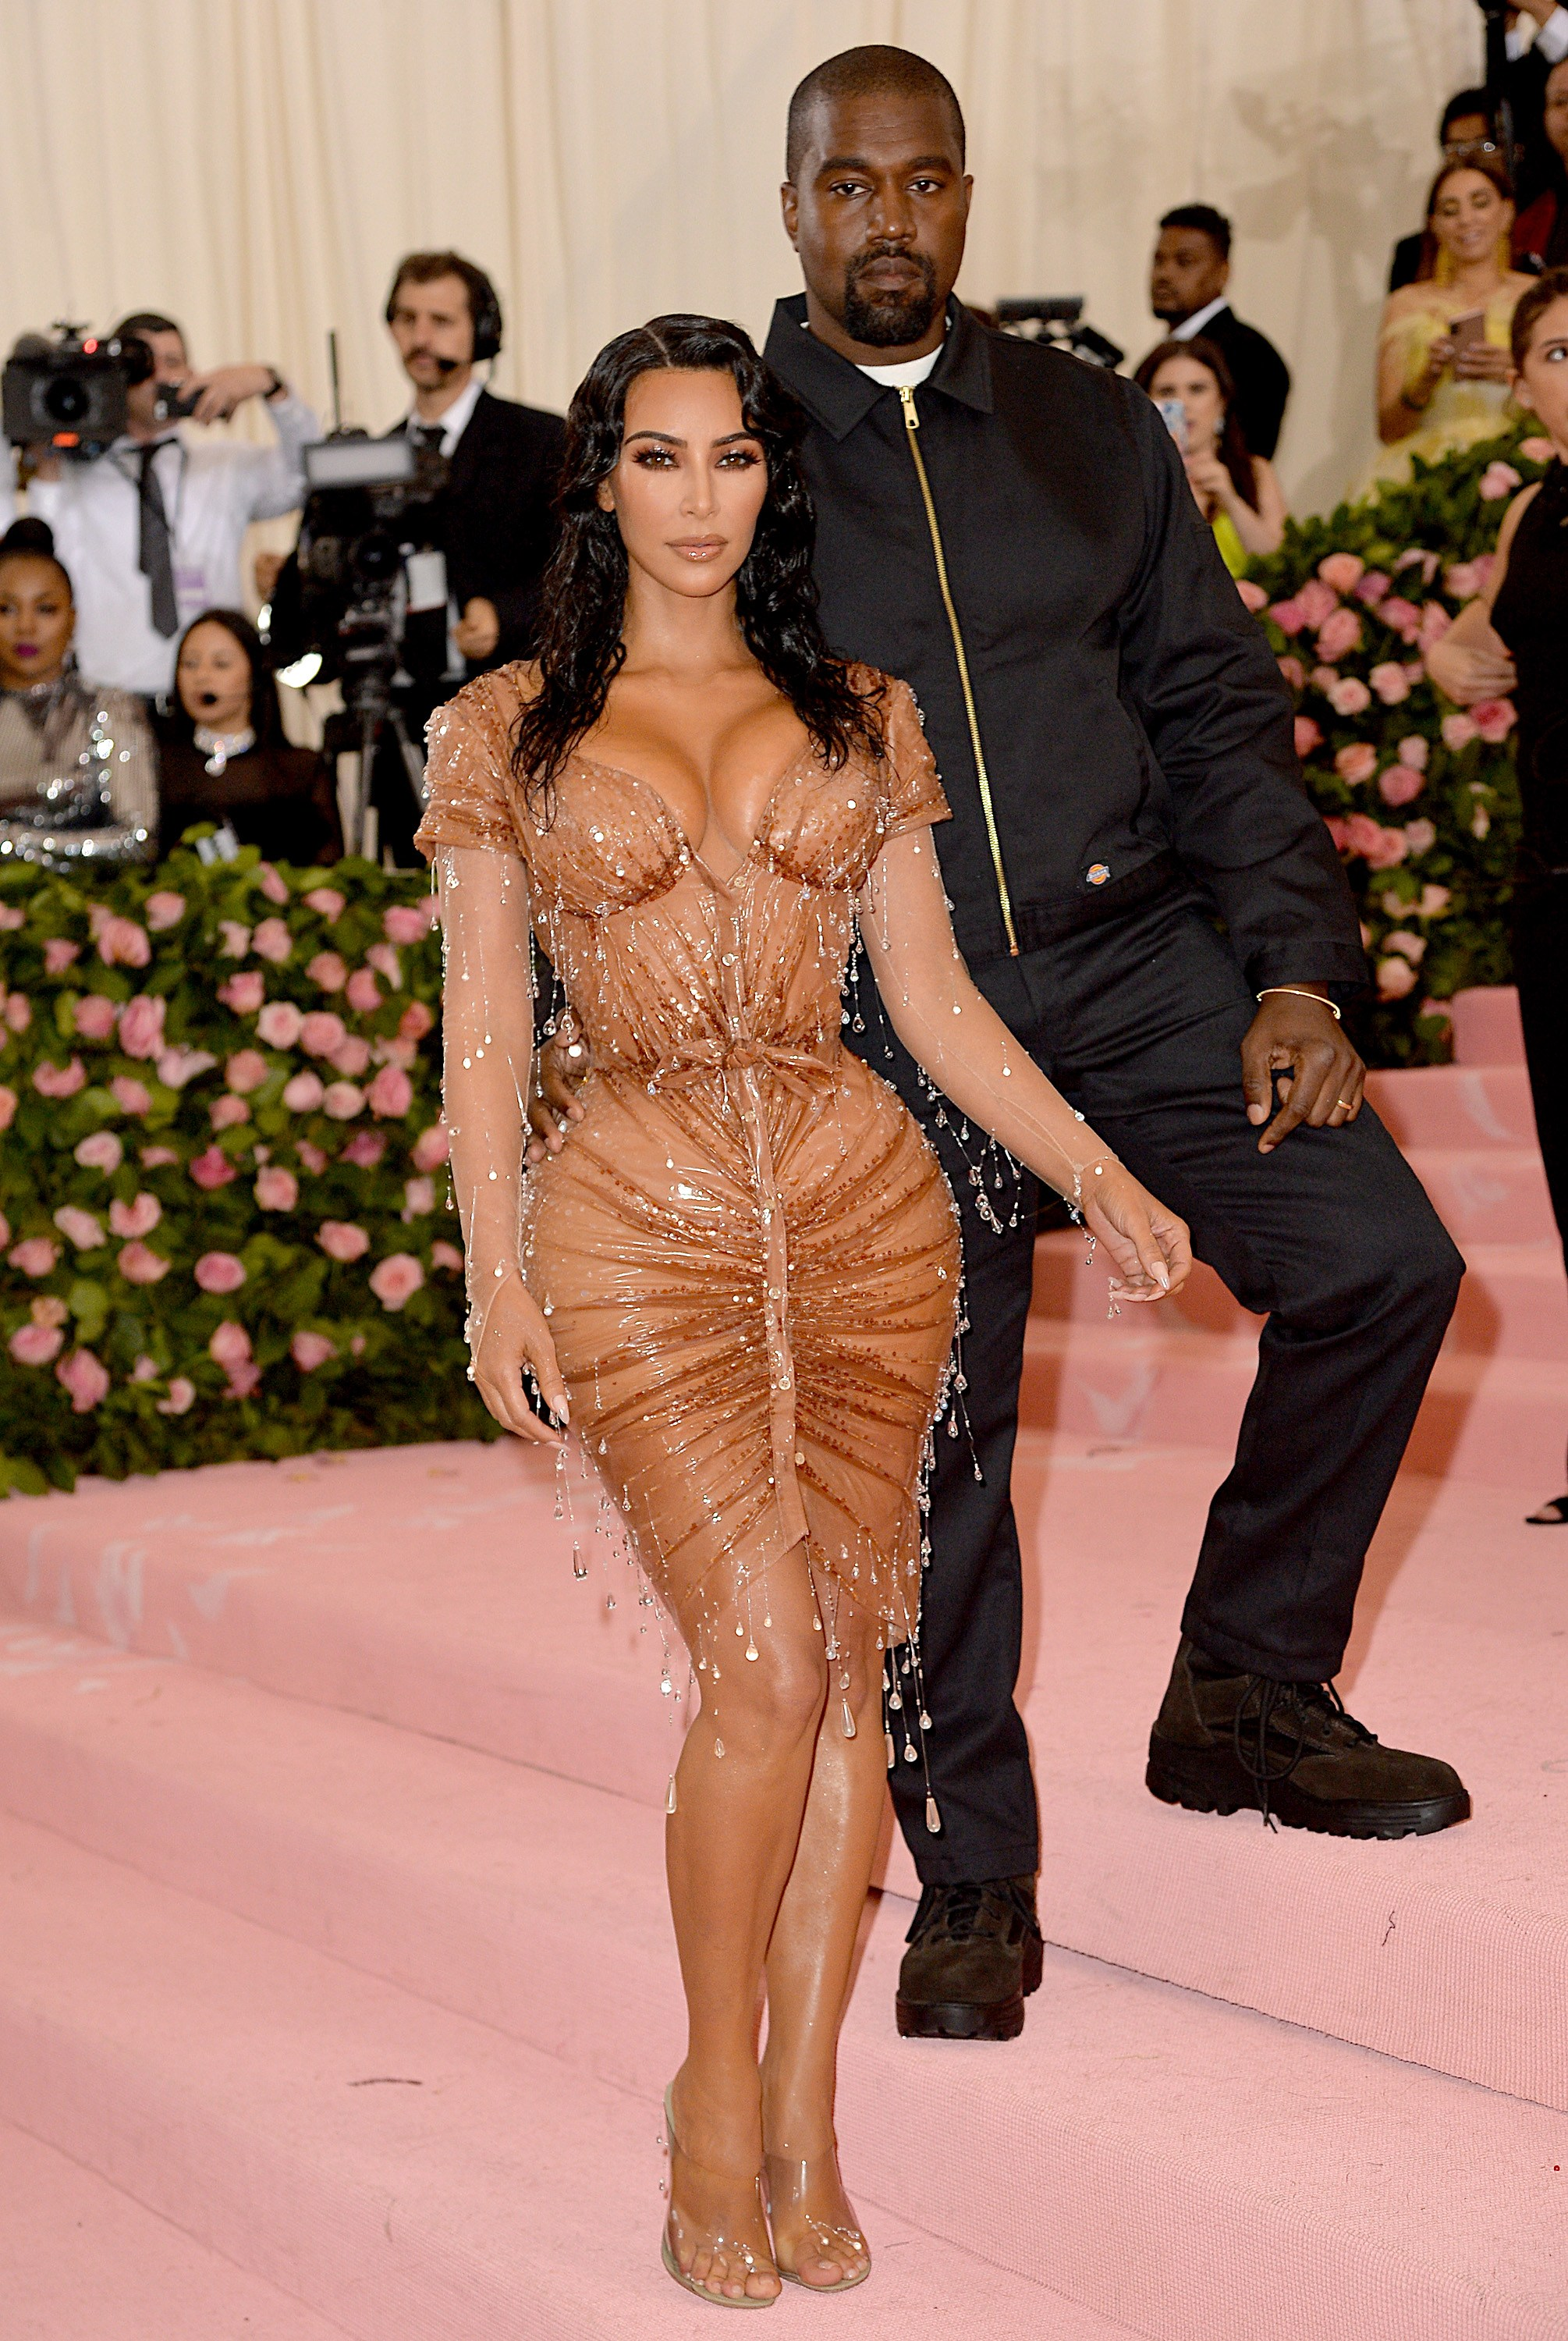 Kim Kardashian West, Kanye West At Arrivals For Camp: Notes On Fashion Met Gala Costume Institute Annual Benefit - Part 3, Metropolitan Museum Of Art, New York, NY May 6, 2019. Photo By:КРЕДИТ Kristin Callahan/Everett Collection/Legion Media